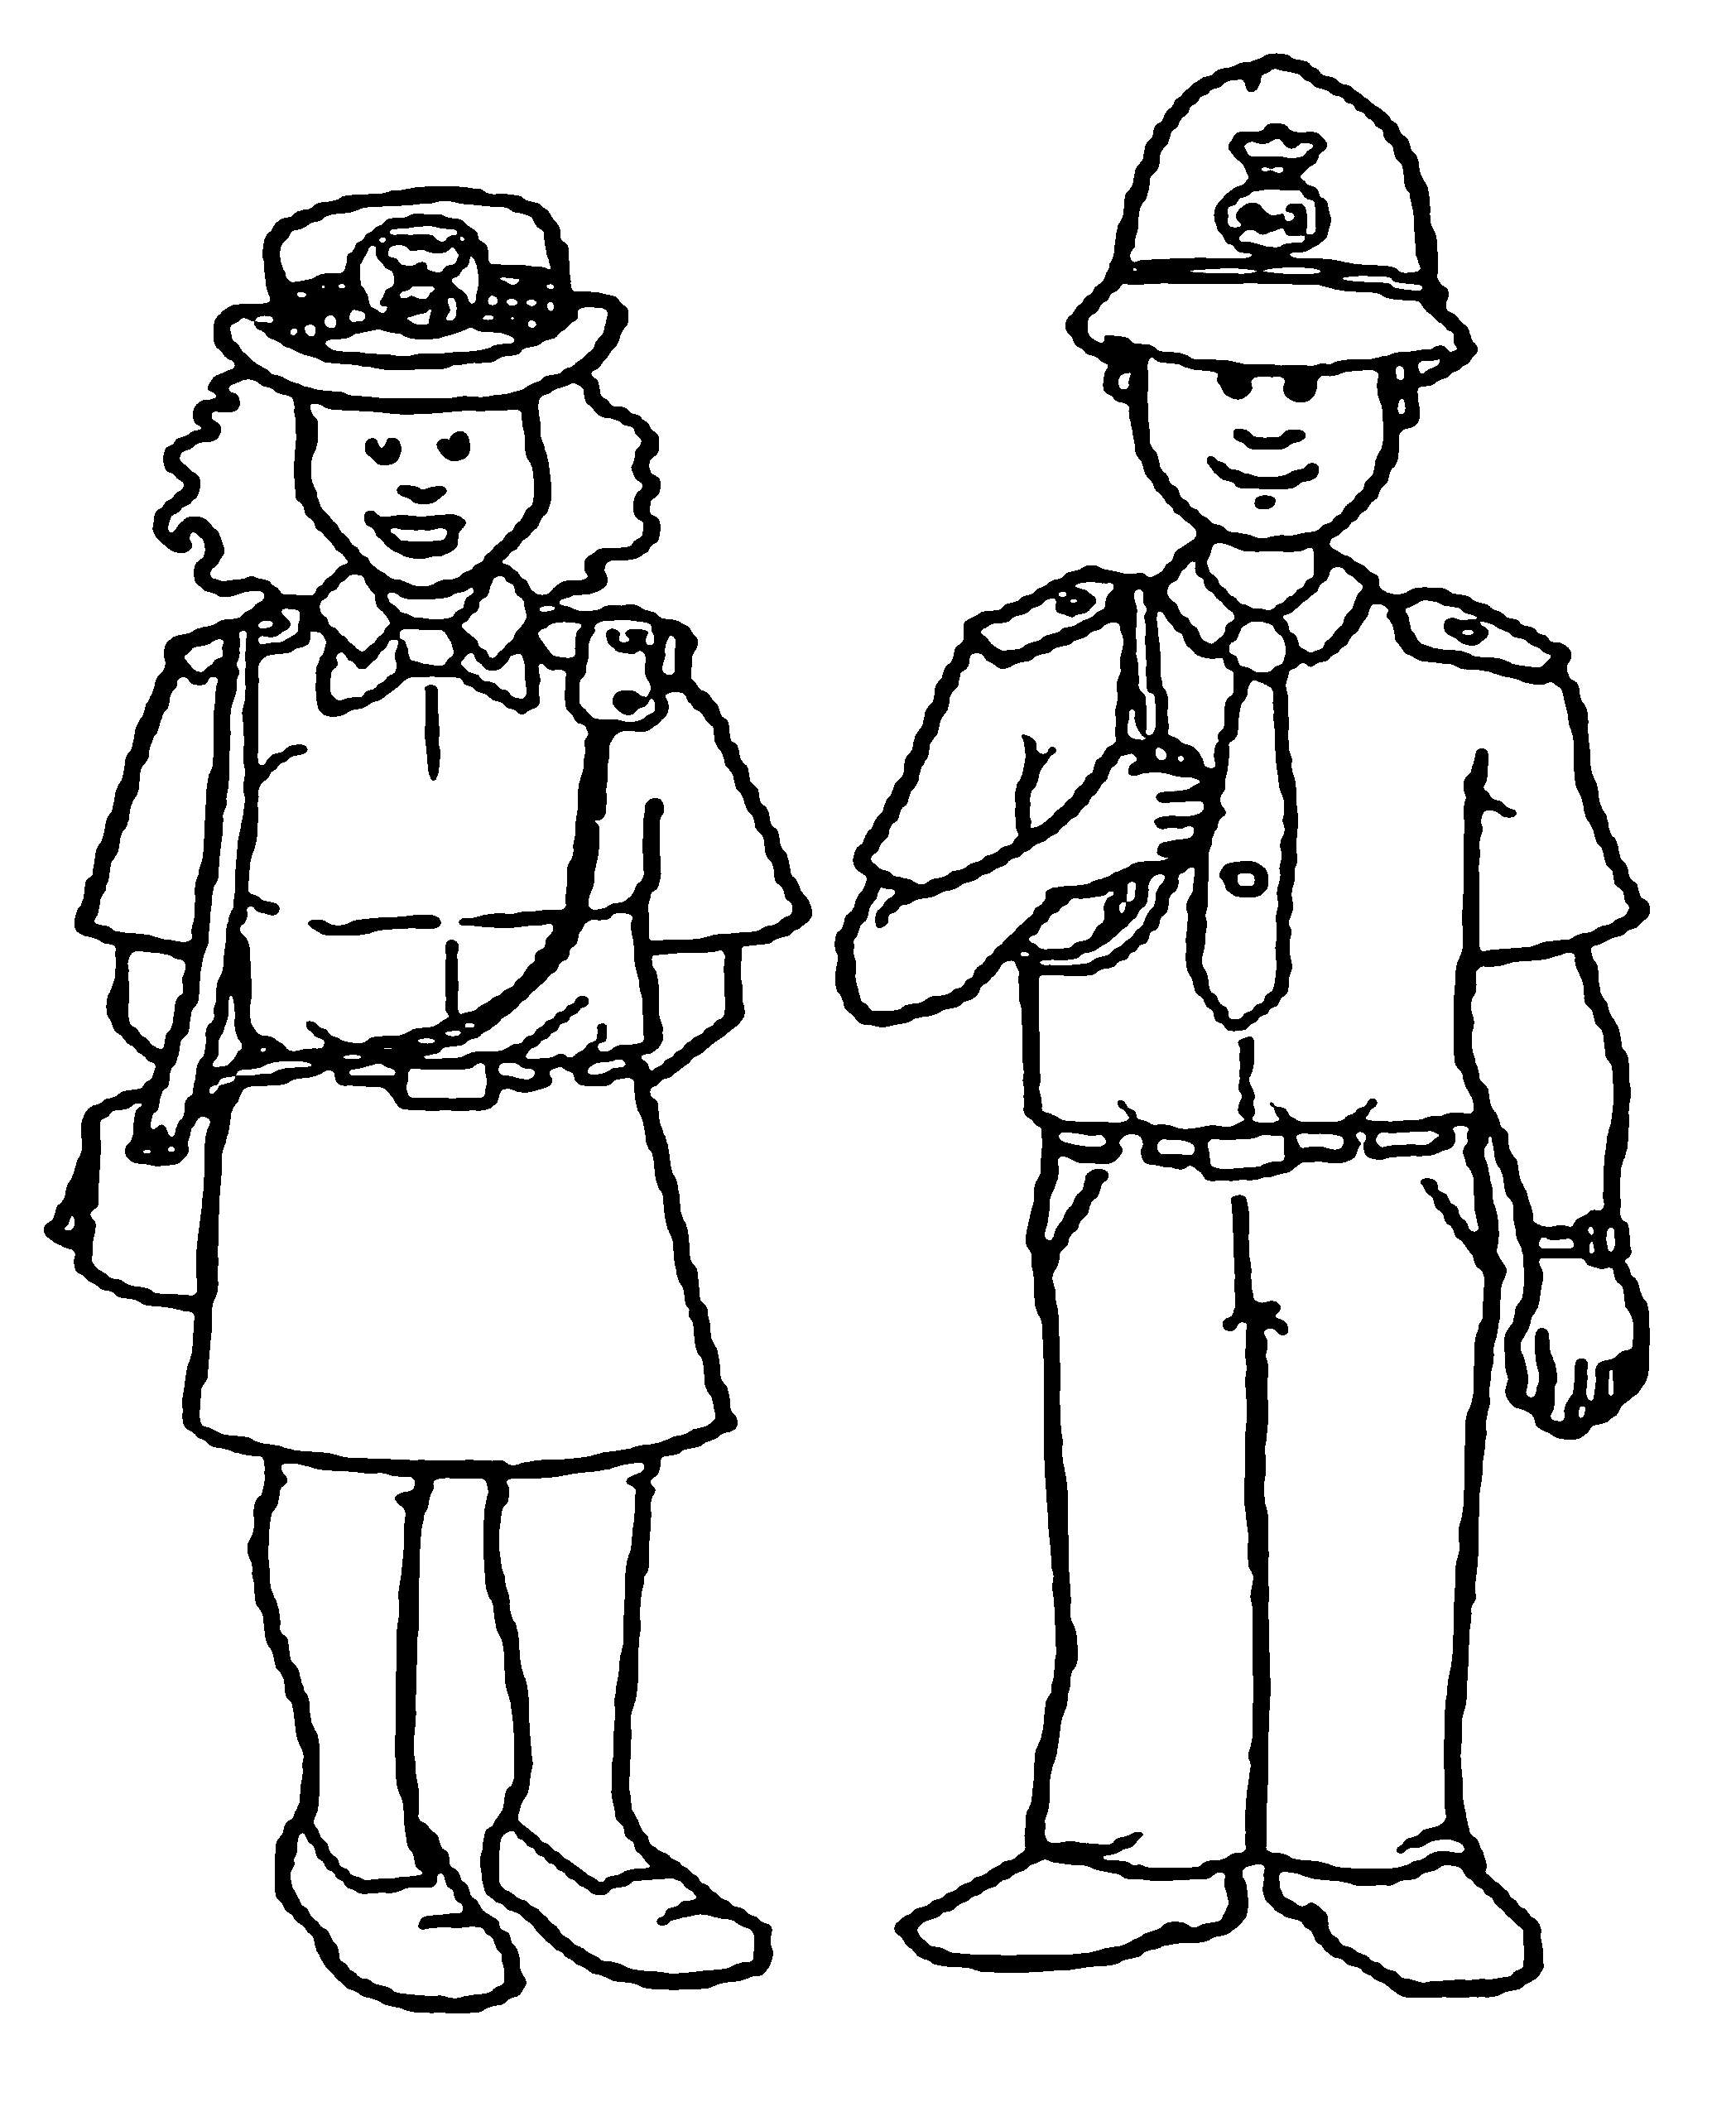 policeman coloring pages kids - photo#26